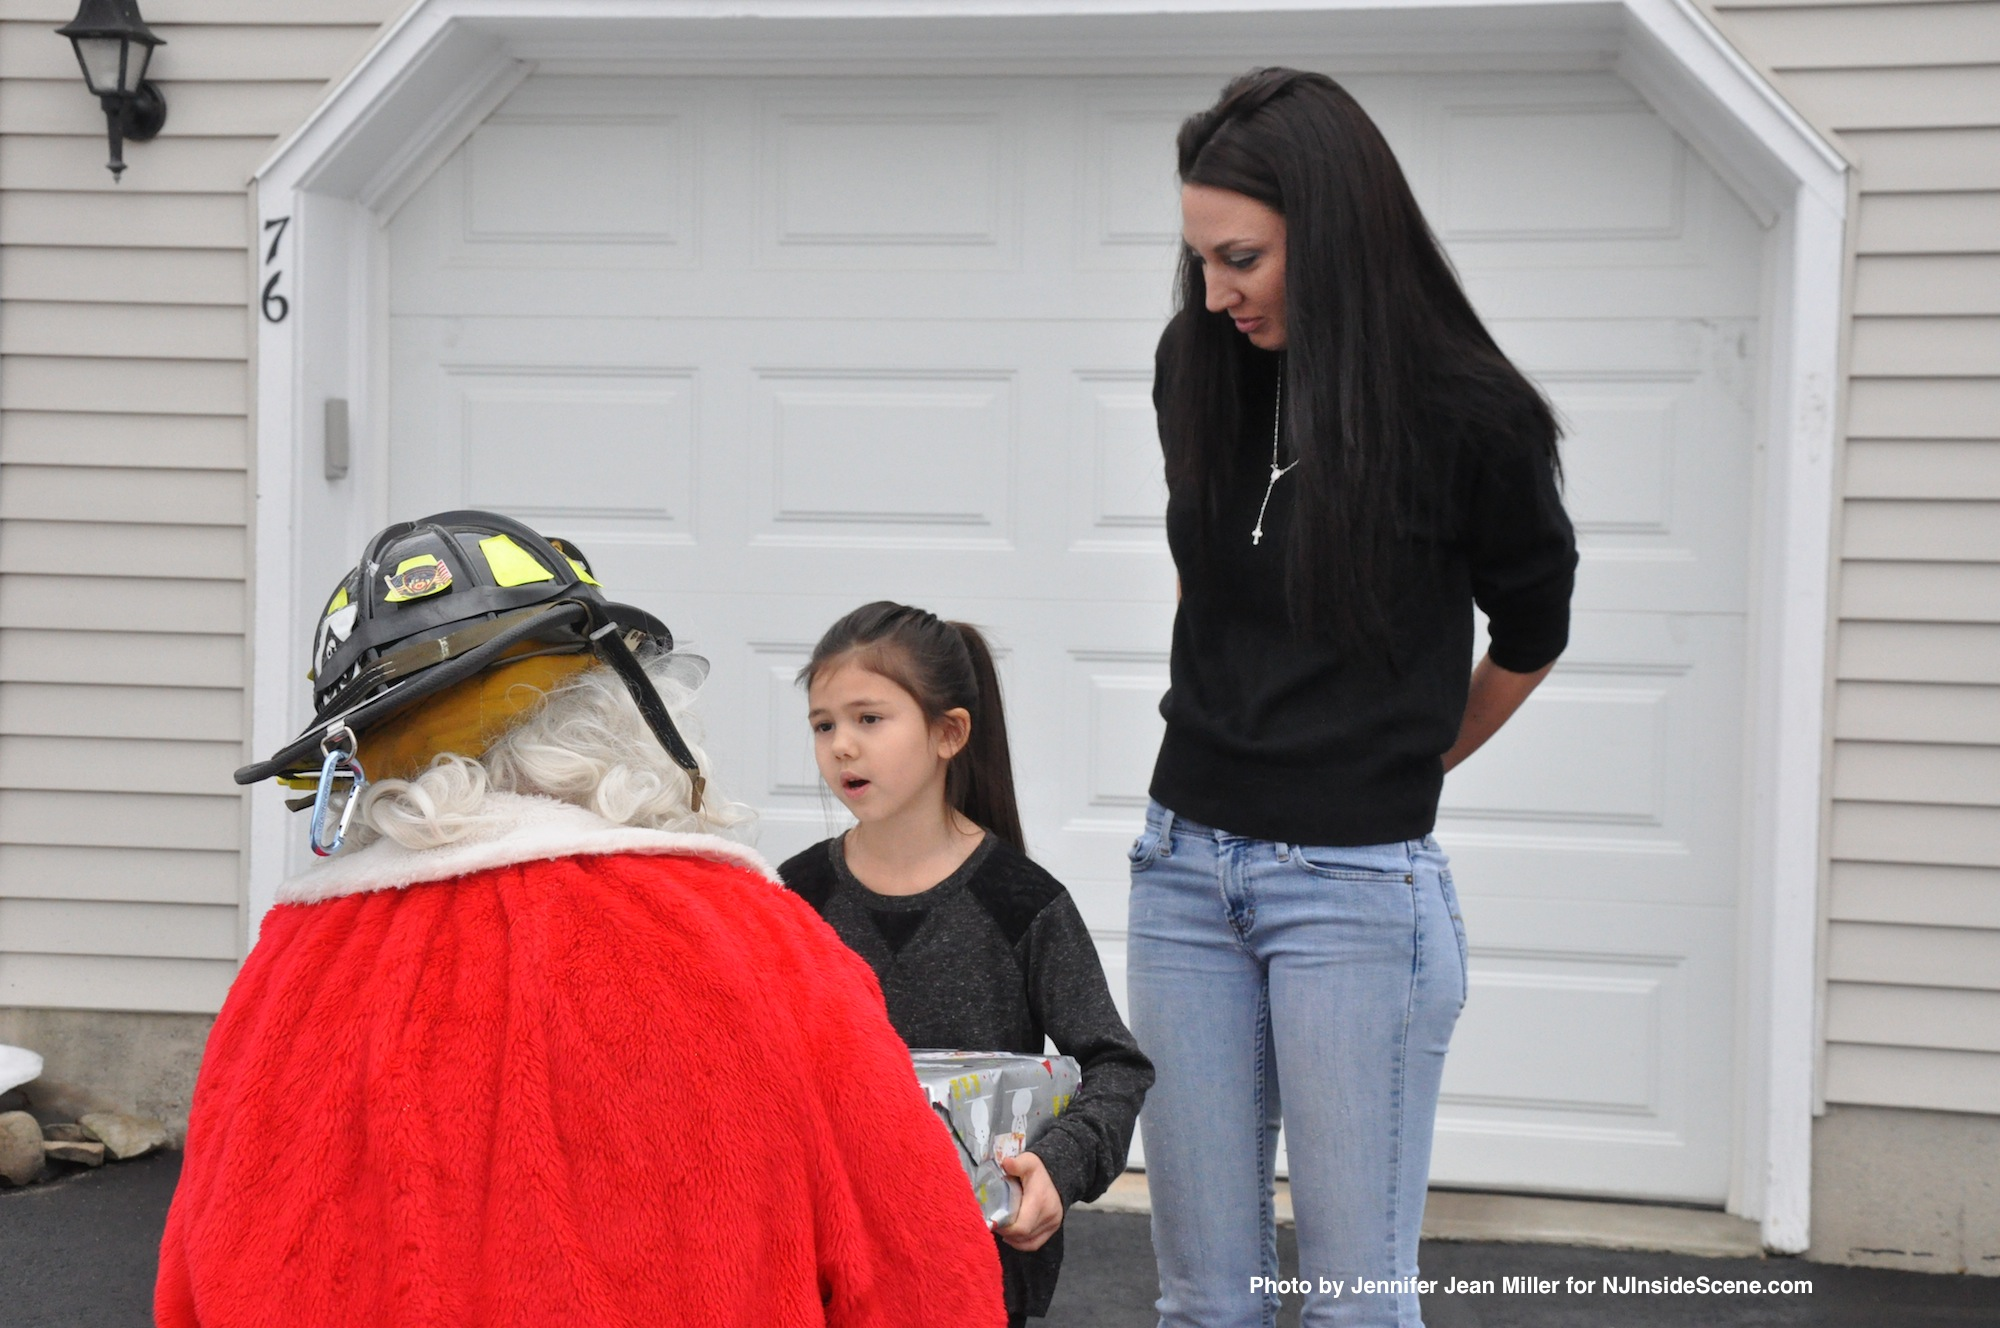 Andraya Serfin, age 6, speaks with Santa, as mom Amy looks on.